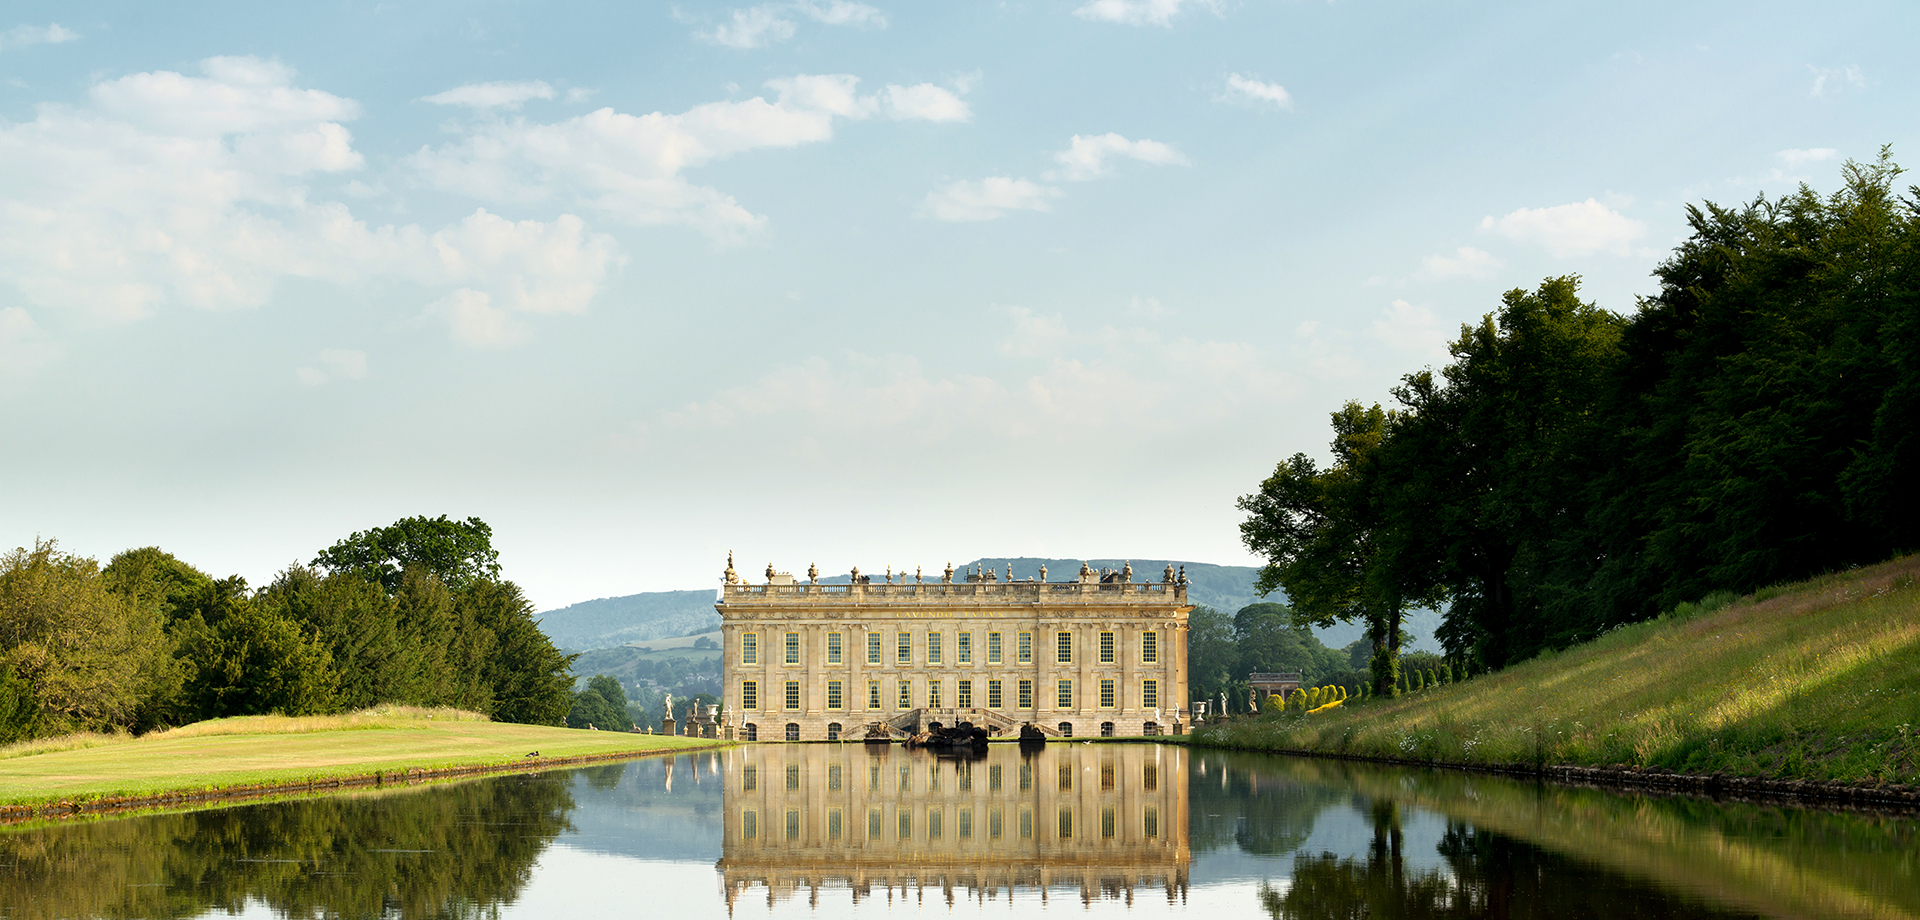 The Meccano nuts to descend on Chatsworth